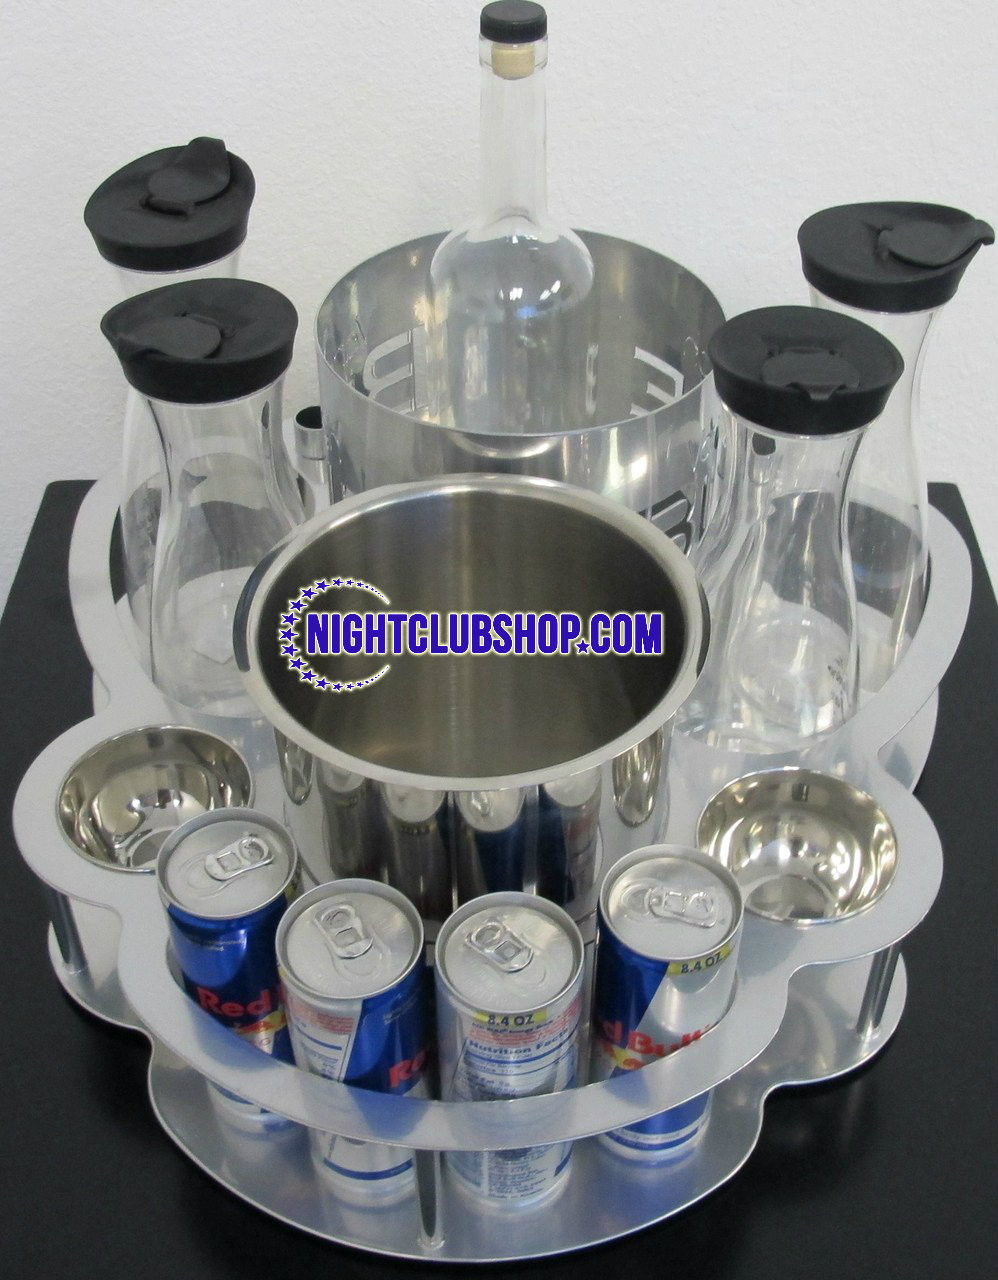 Champagne, Bottle, service, Tray, custom